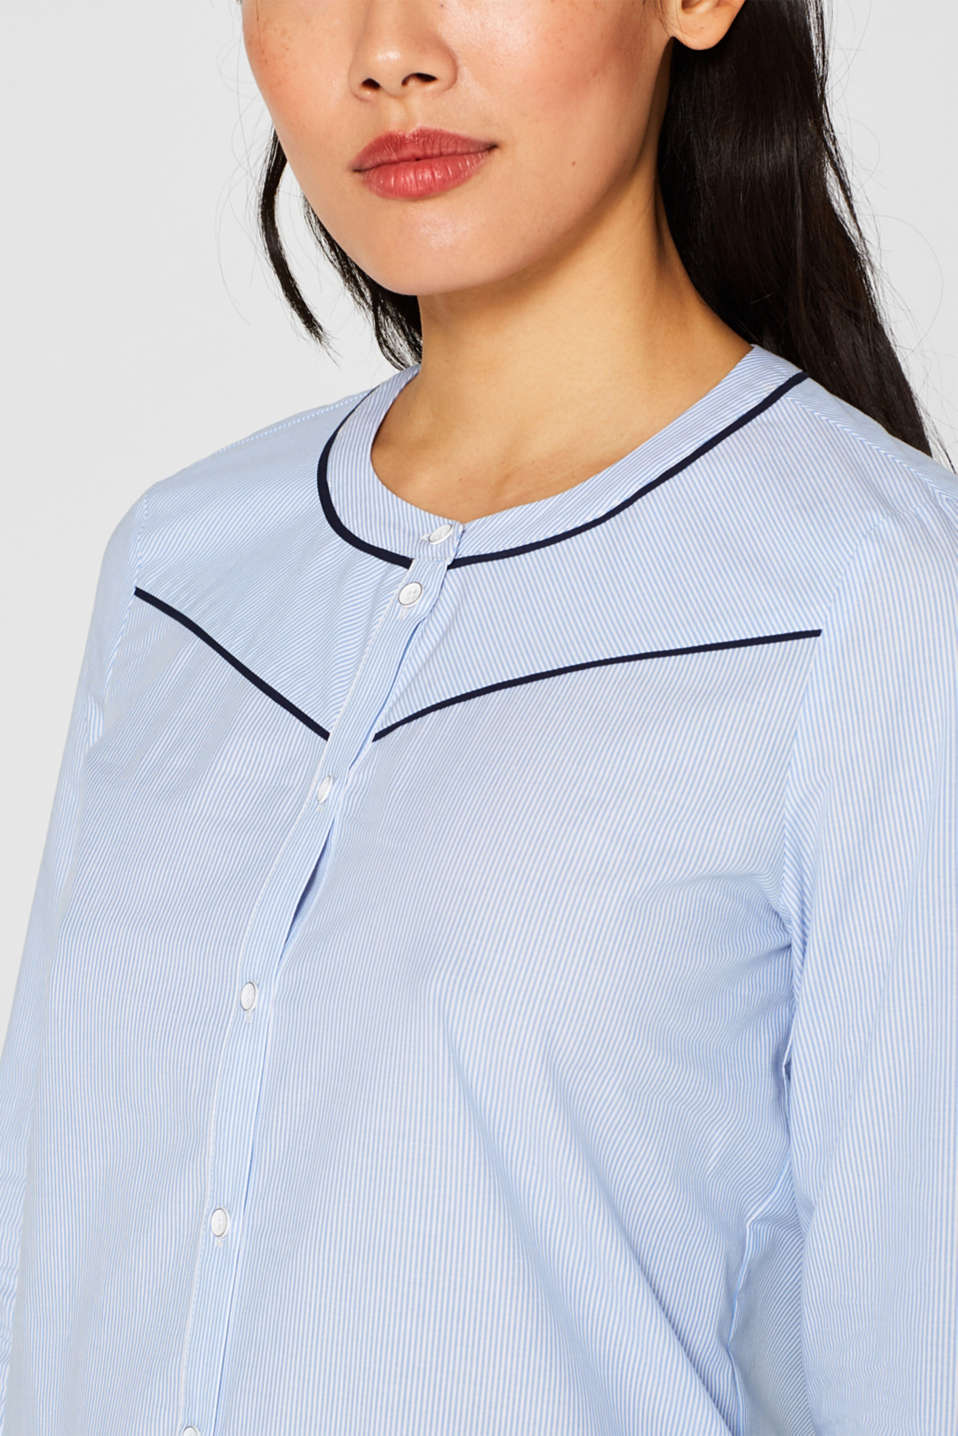 Blouse with piping, 100% cotton, LIGHT BLUE, detail image number 2